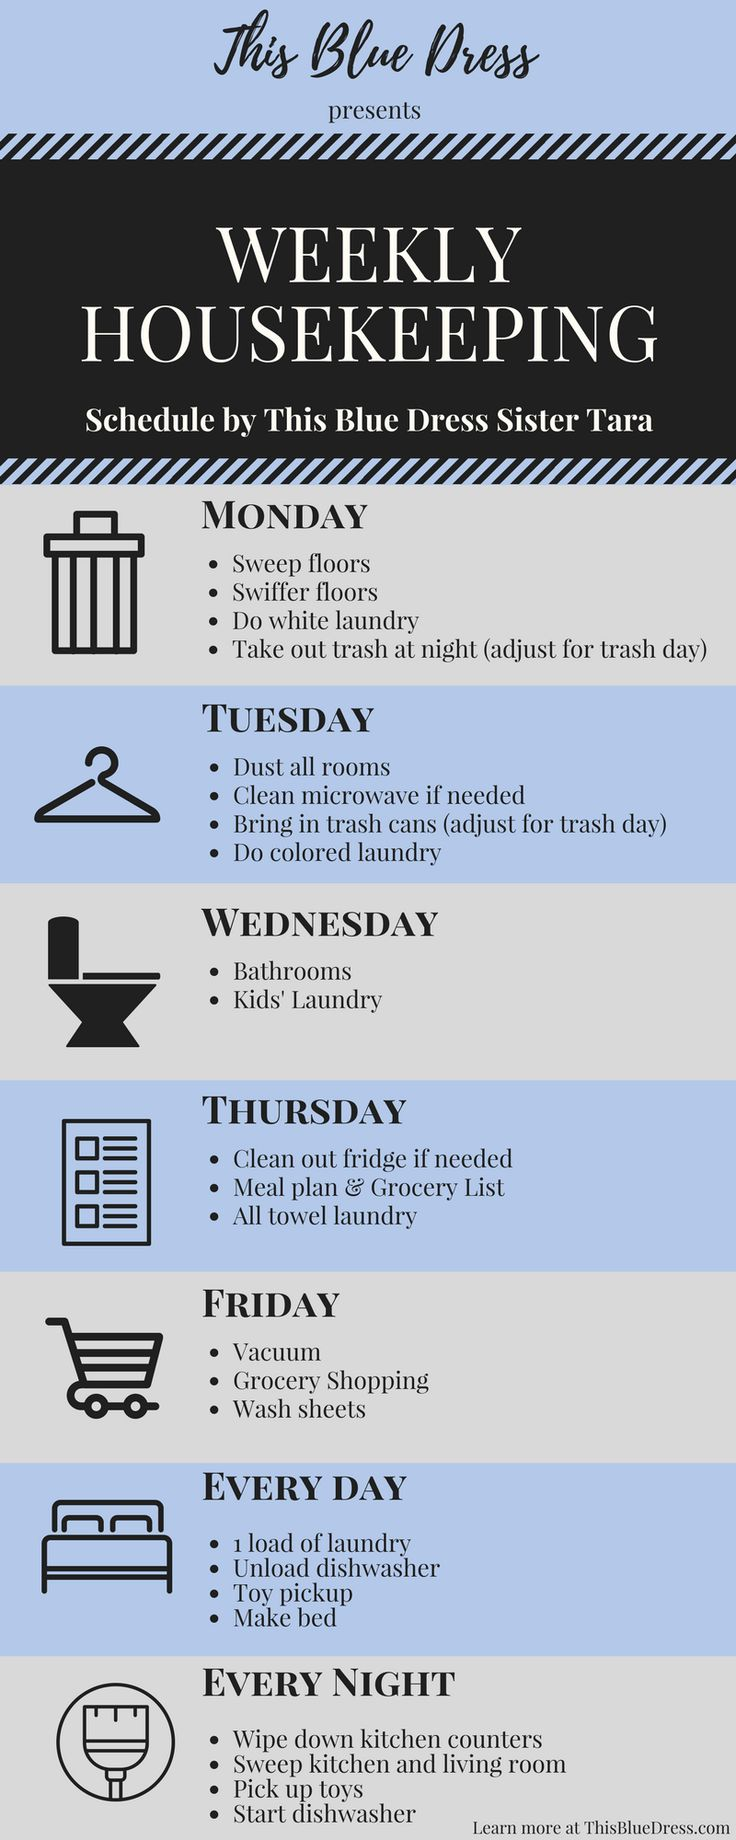 Weekly Housekeeping Schedule--A simple, effective way to keep your house and routines sparkling!